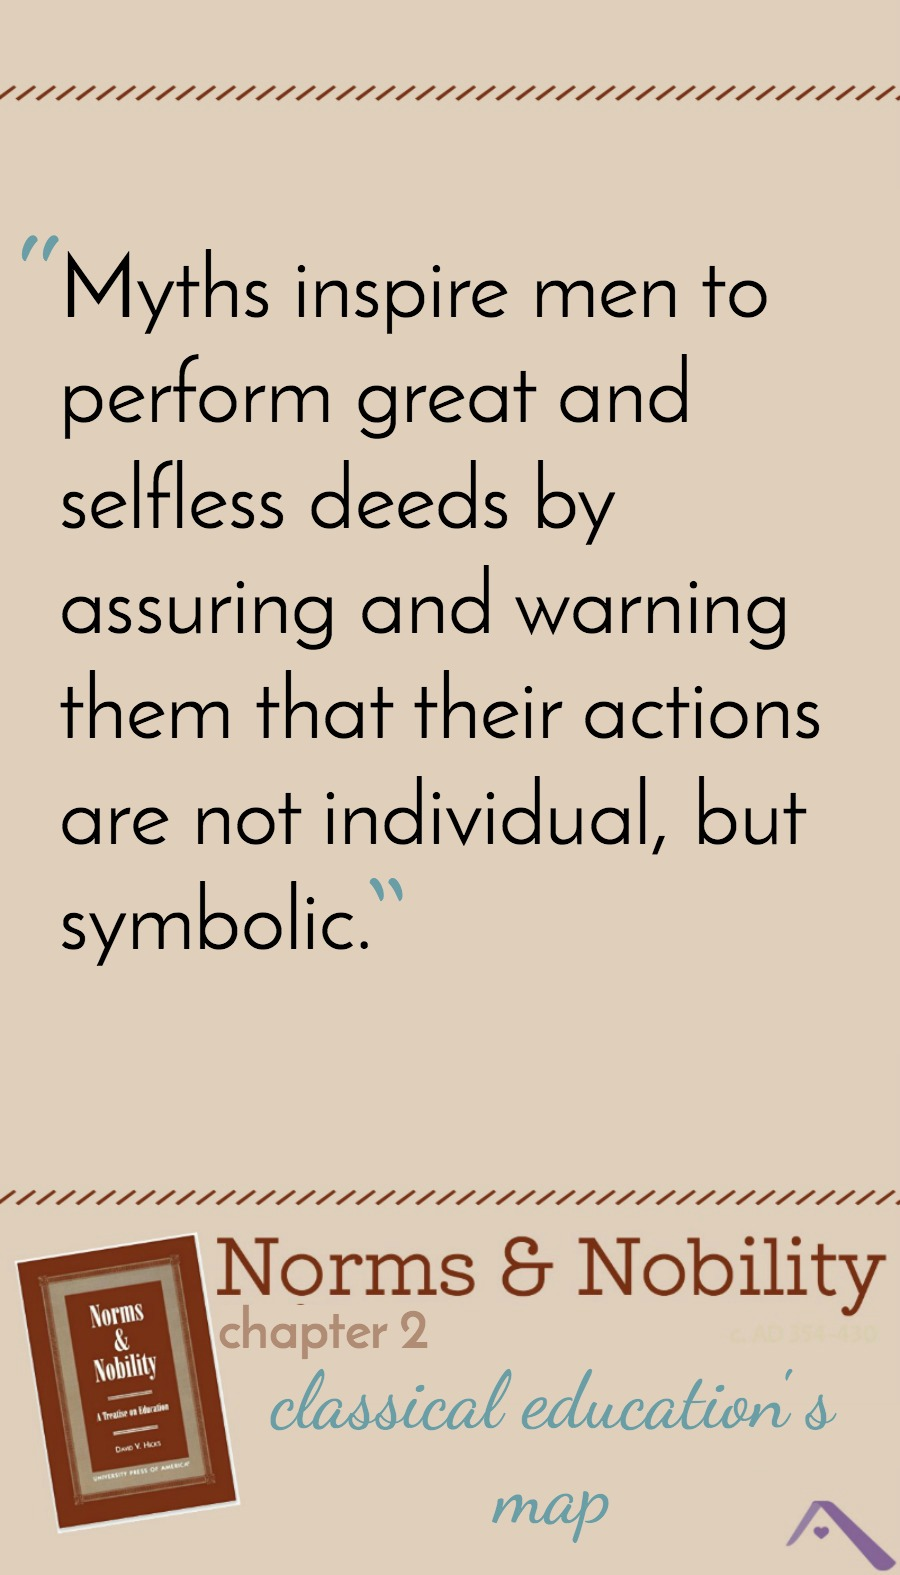 Norms & Nobility - Myths inspire men to perform great and selfless deeds by assuring and warning them that their actions are not individual, but symbolic.